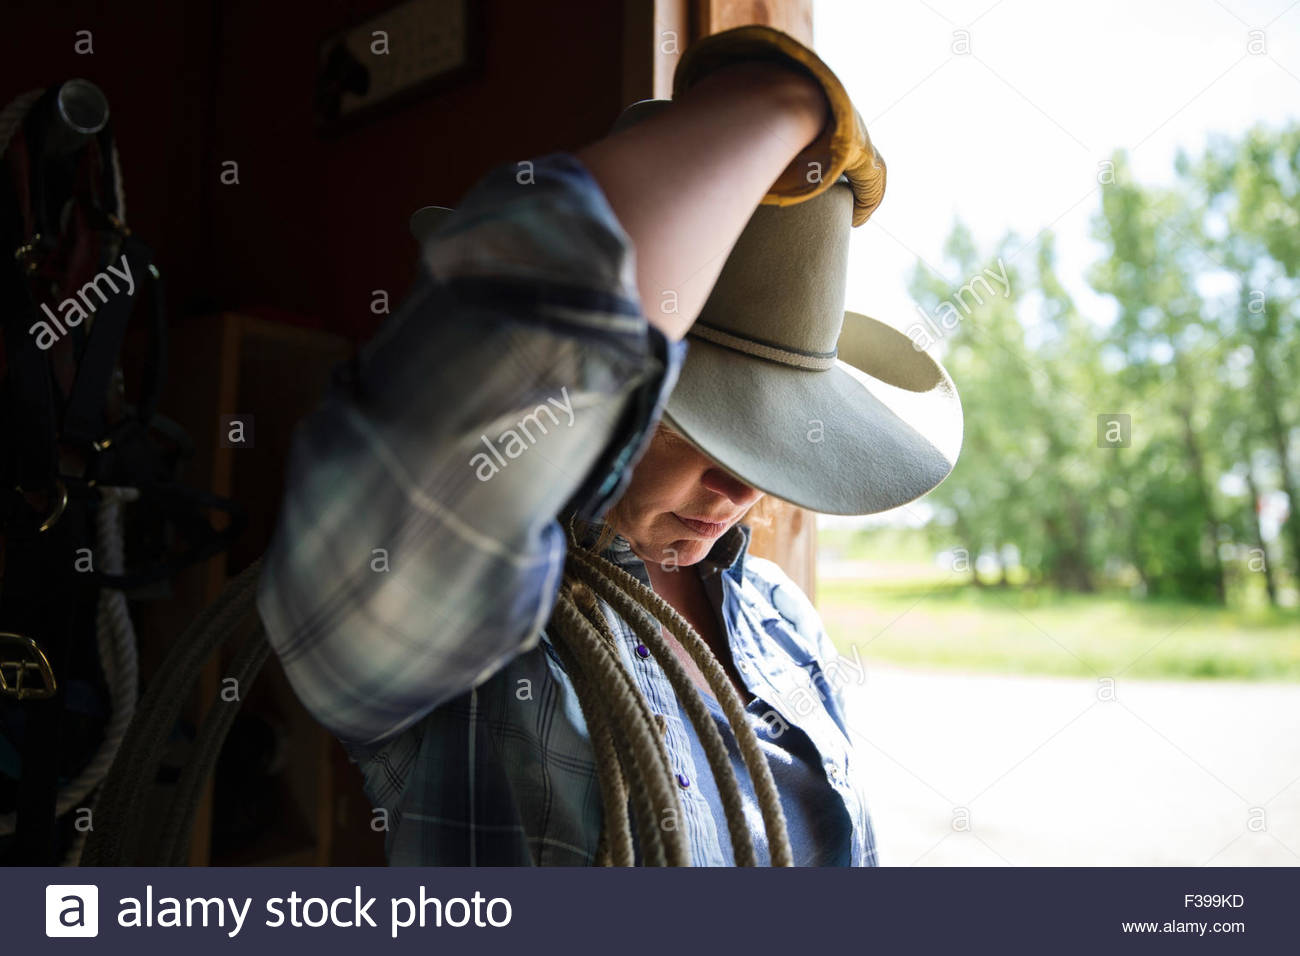 d544a8d24707d Female rancher in cowboy hat looking down in doorway Stock Photo ...